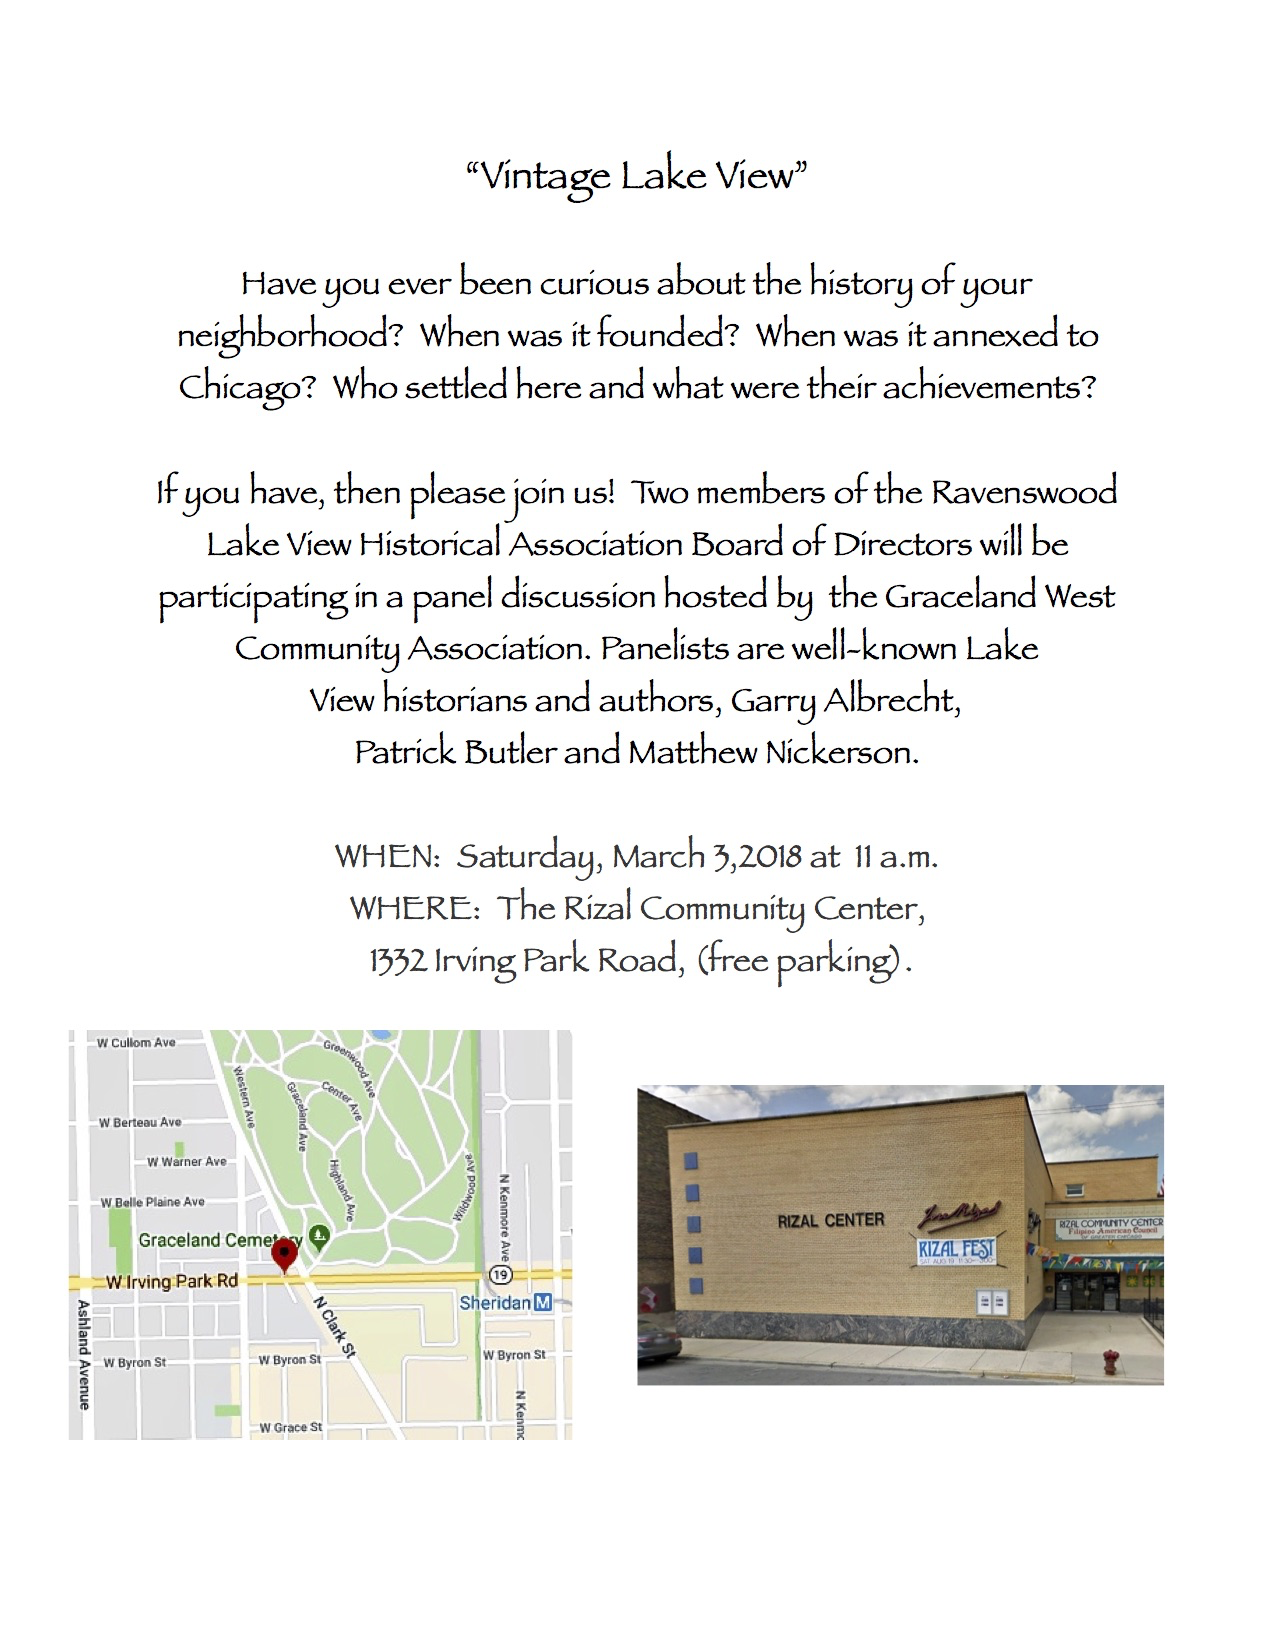 Vintage Lake View History Panel Discussion - Mar 3, 11am - Rizal Community Center, 1332 Irving Park Road (free parking available)